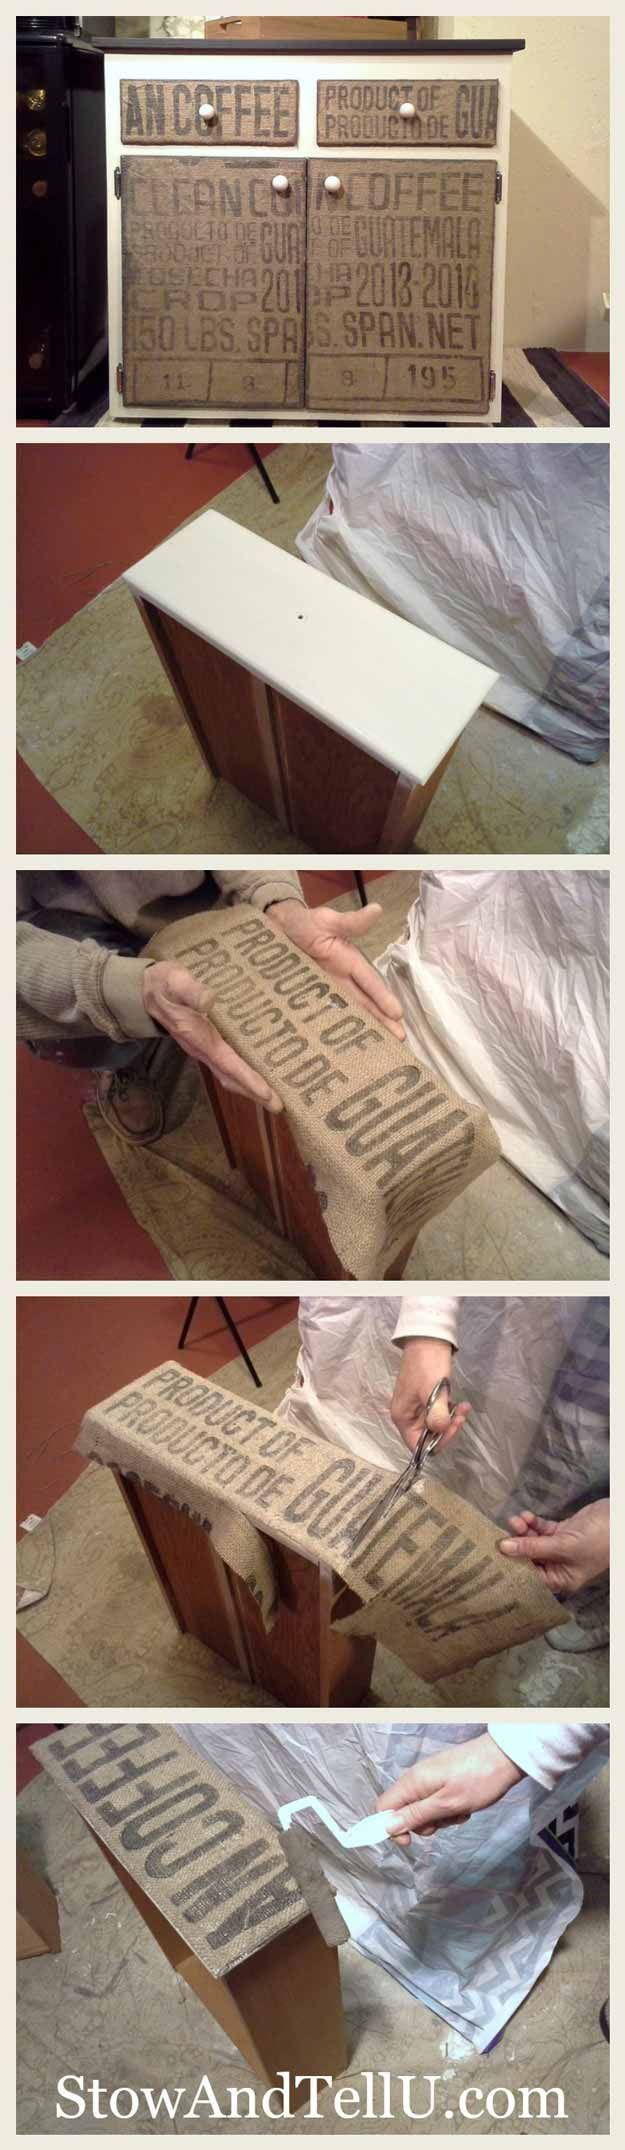 15 Burlap Sack Uses (Not Just a Bag of Potatoes) | Homesteading Simple Self Sufficient Off-The-Grid | Homesteading.com